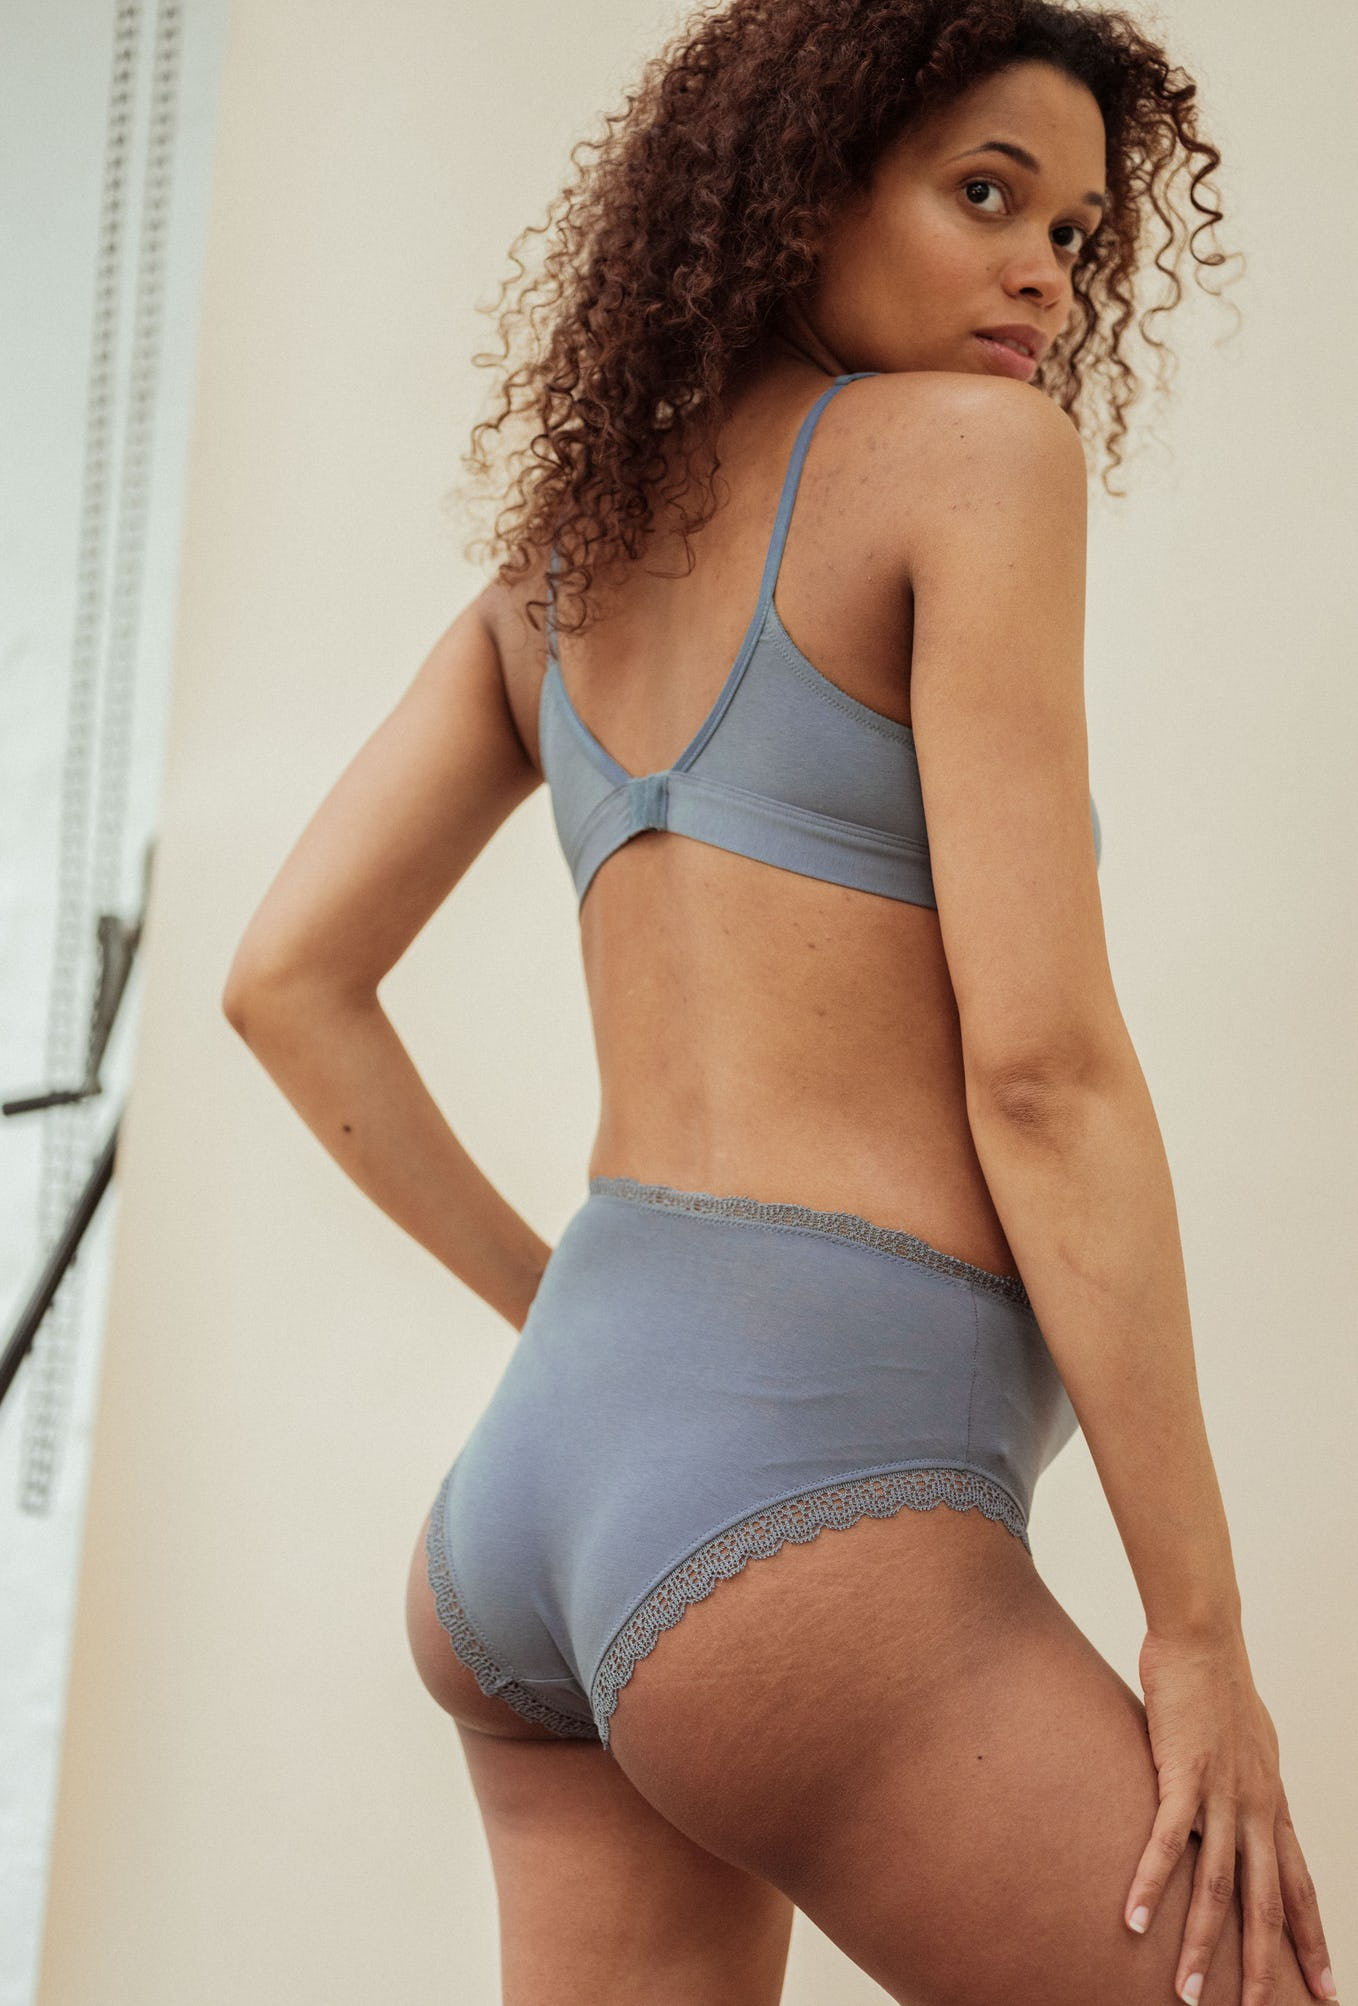 High waisted briefs Une chanson douce in storm grey